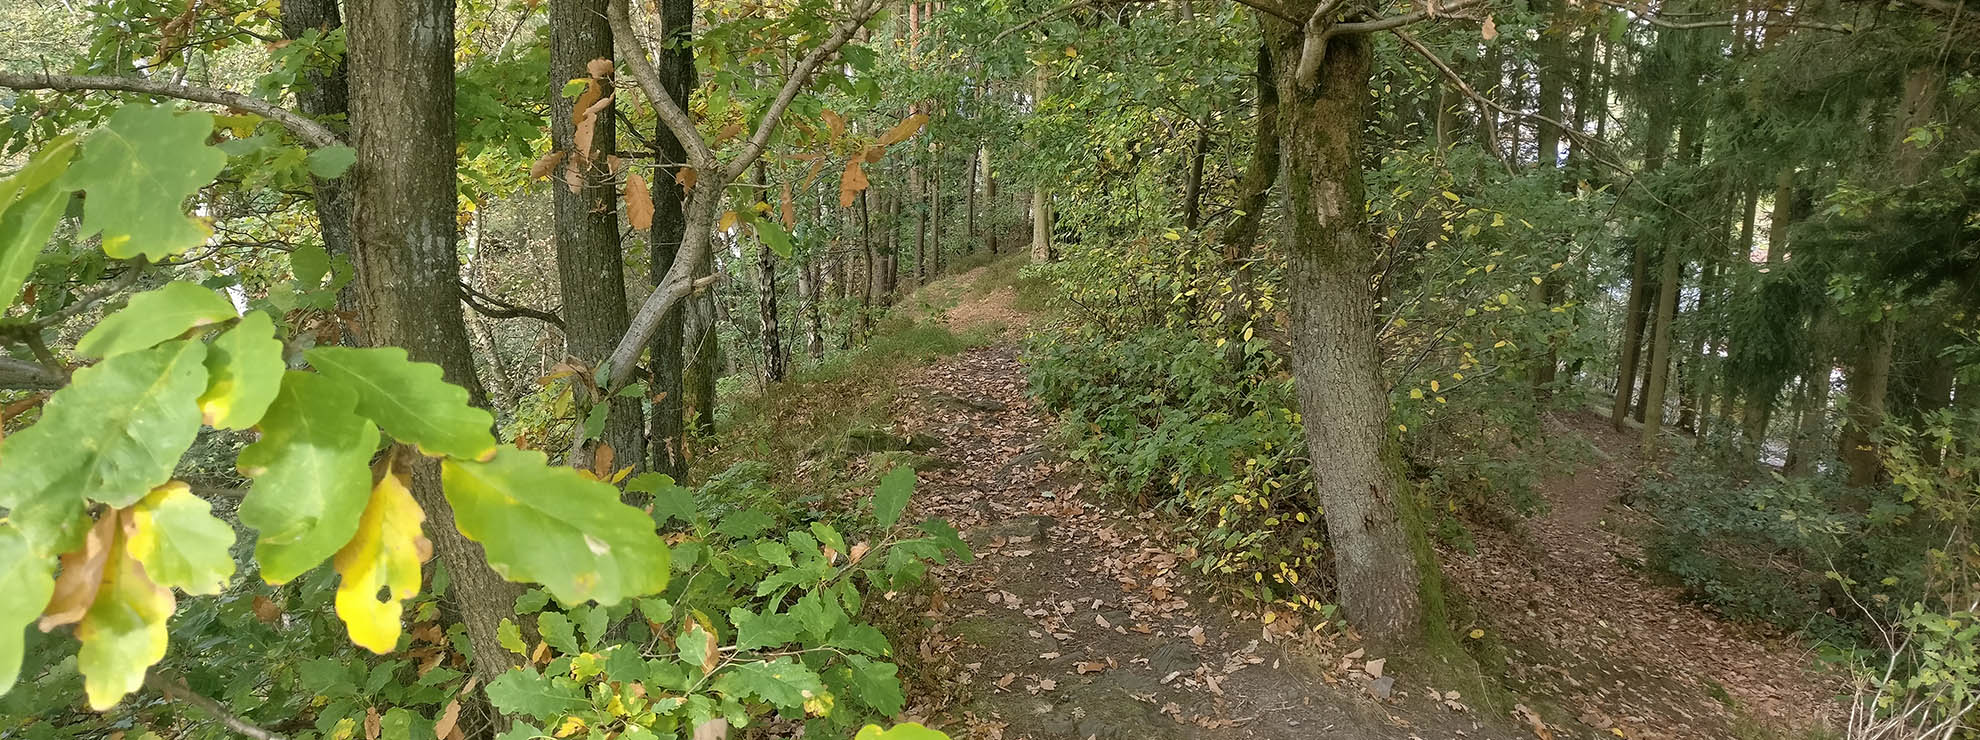 Sauerland Mountain Bike Trails direkt in der Nähe